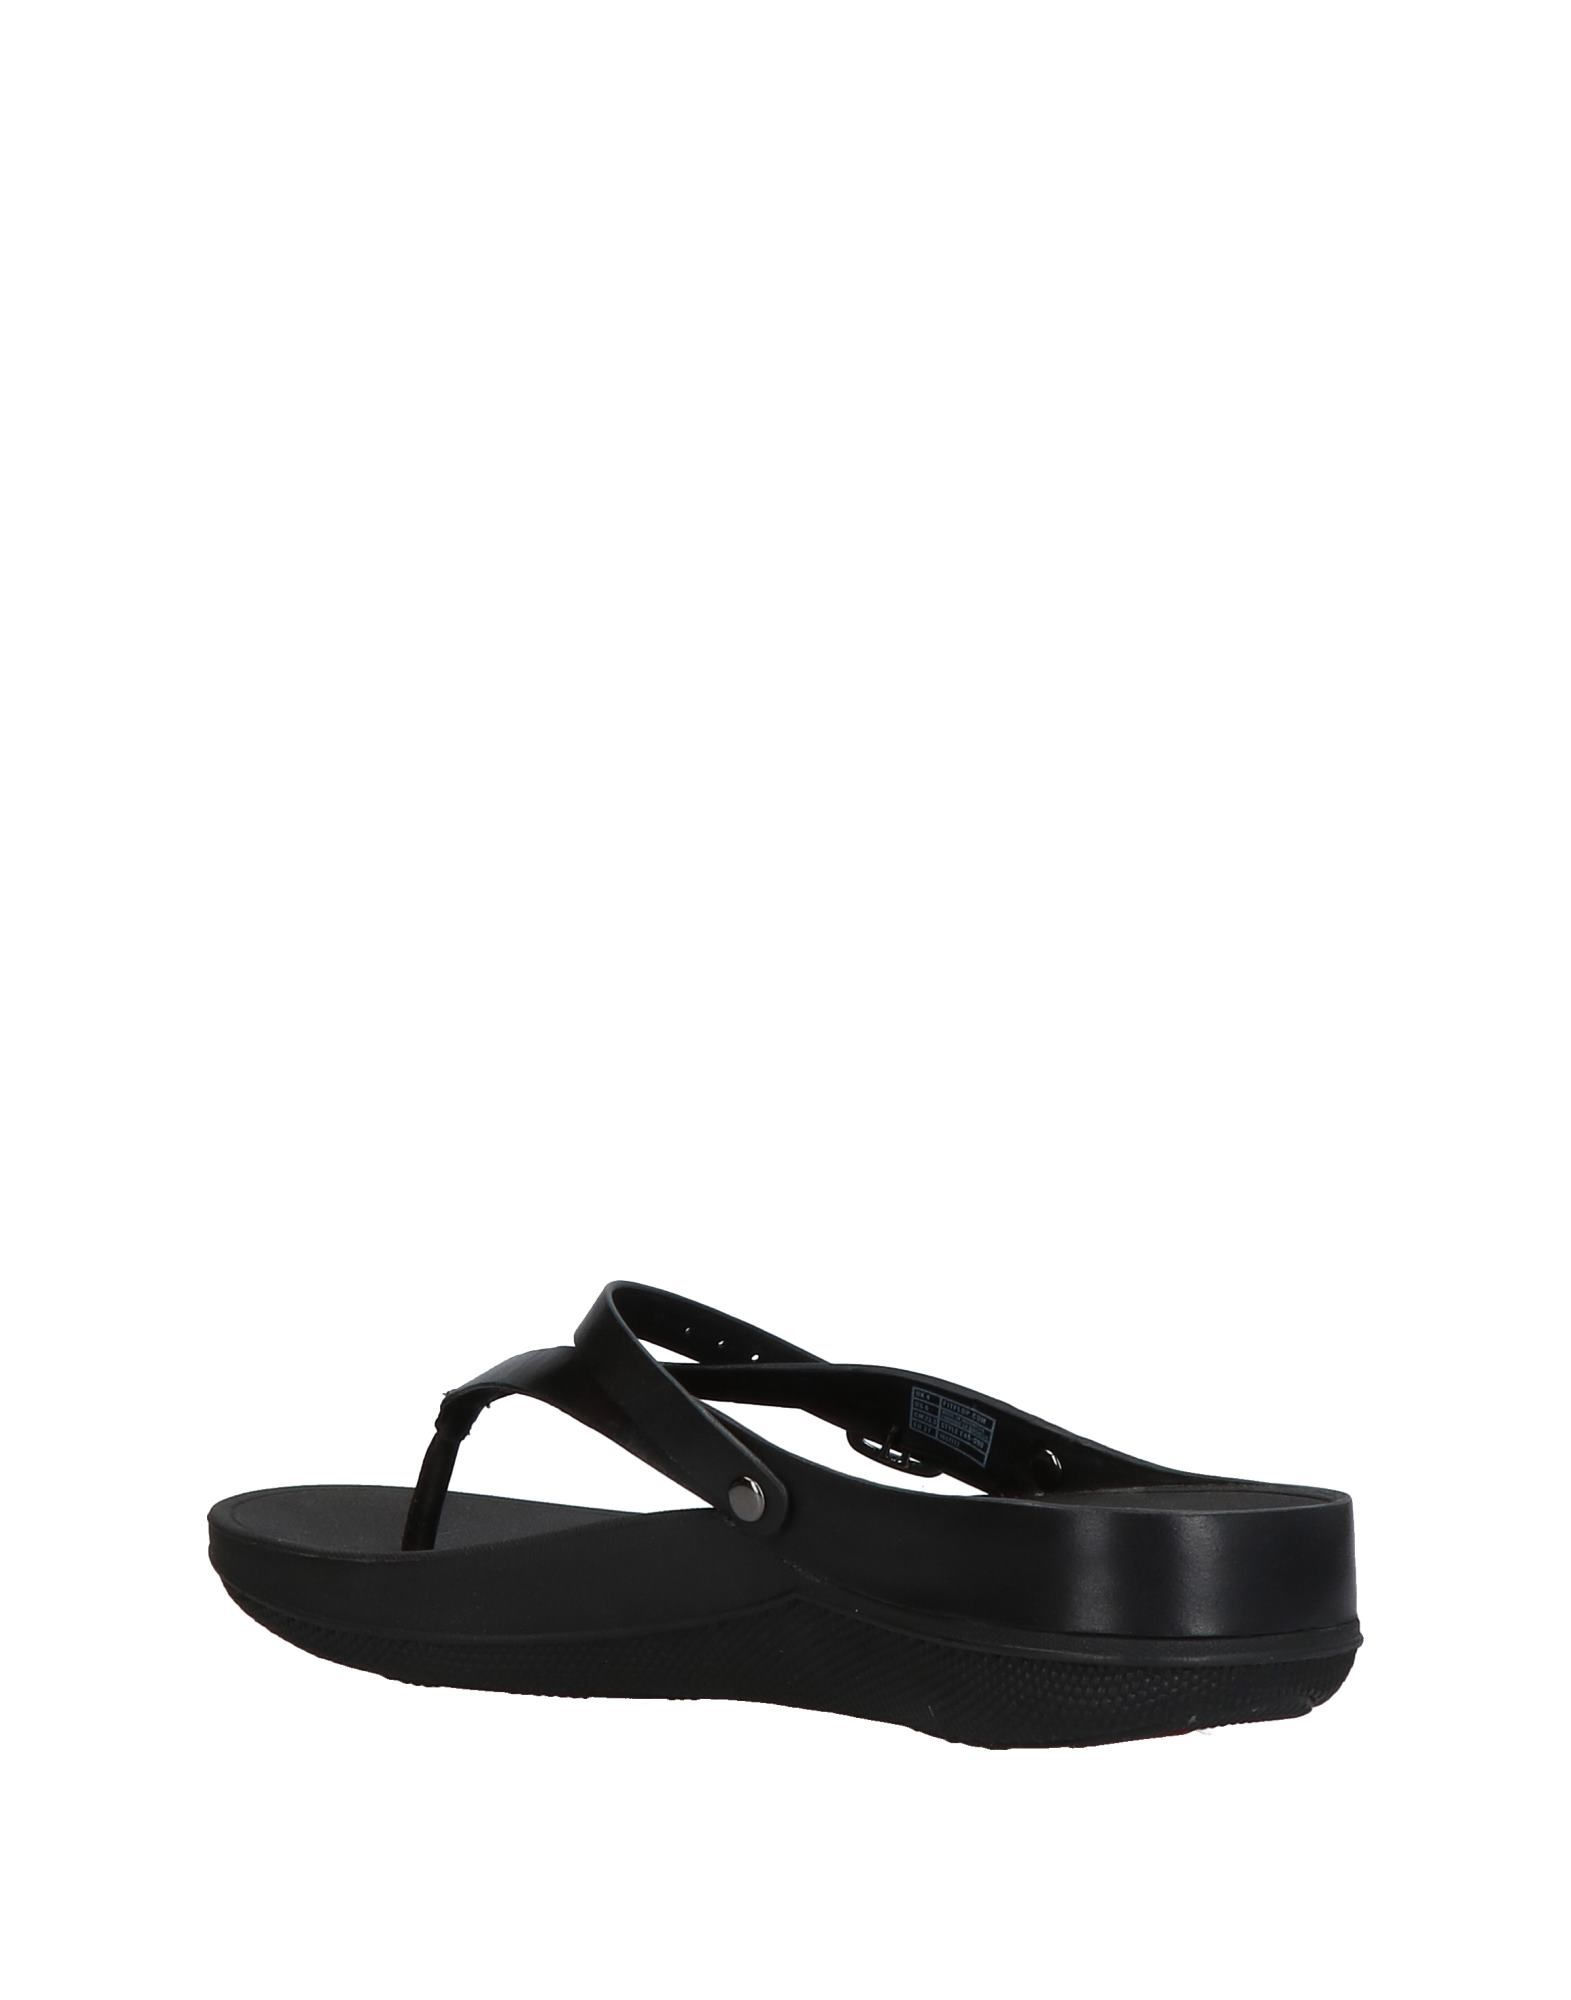 Tongs Fitflop Femme - Tongs Fitflop sur